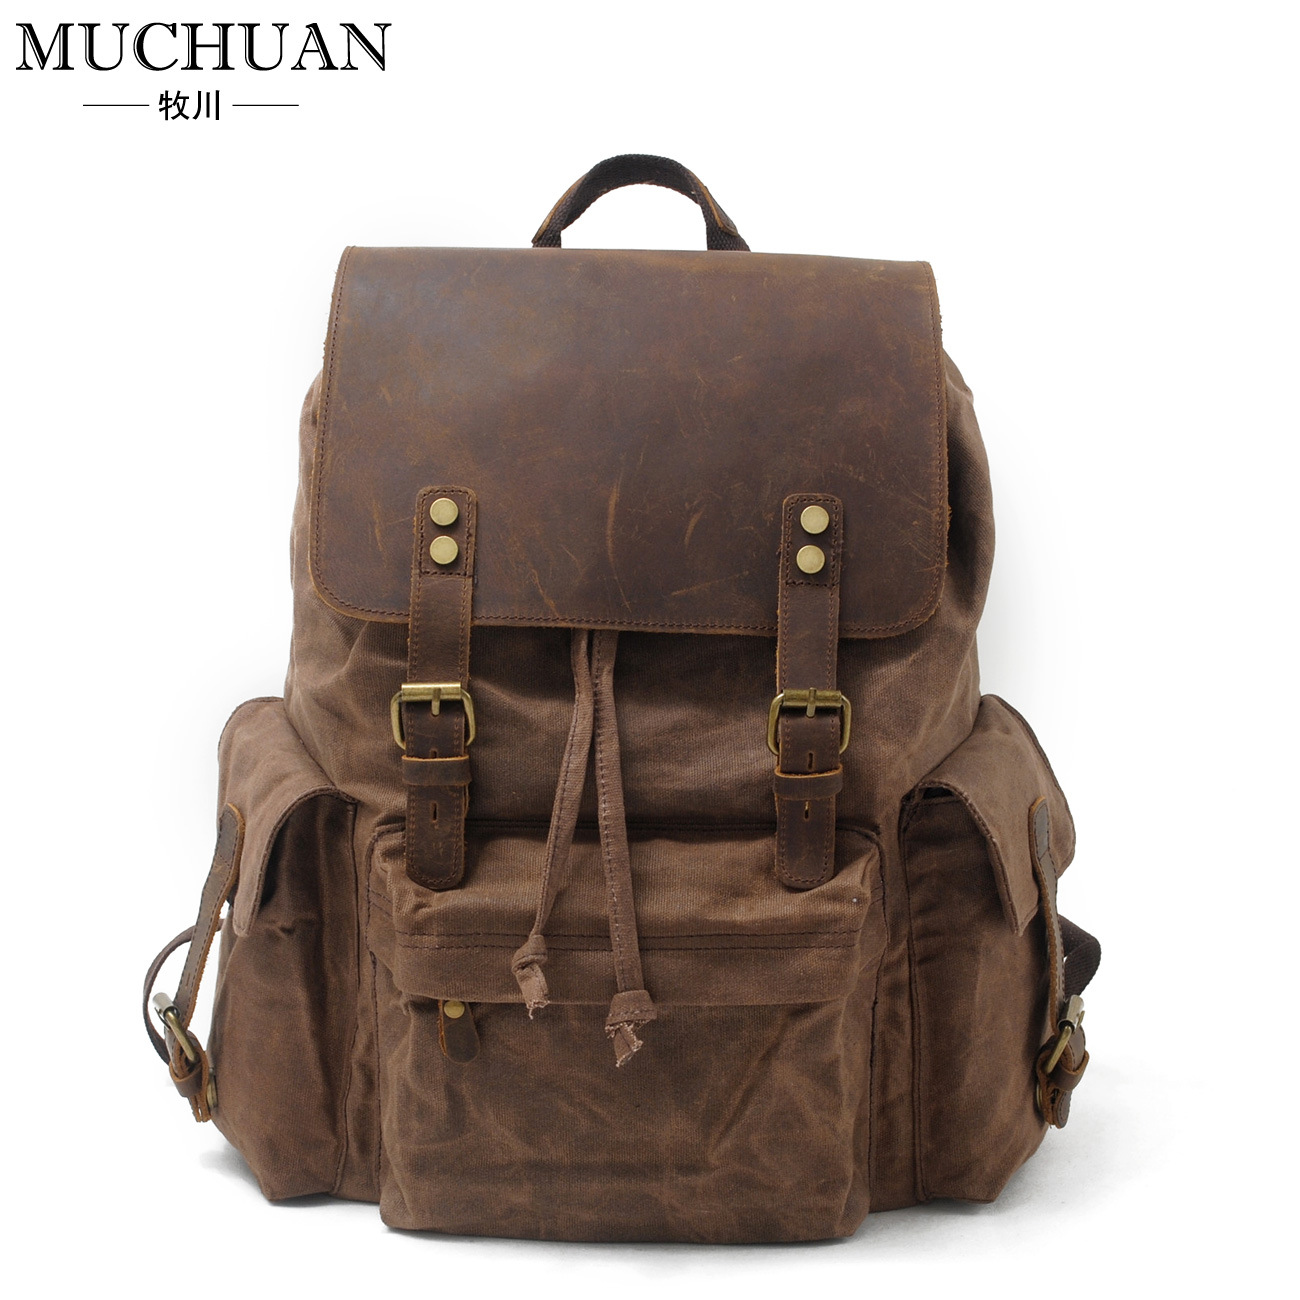 Canvas bag with leather male backpack bag high-capacity package backpack male classic microfiber leather backpack